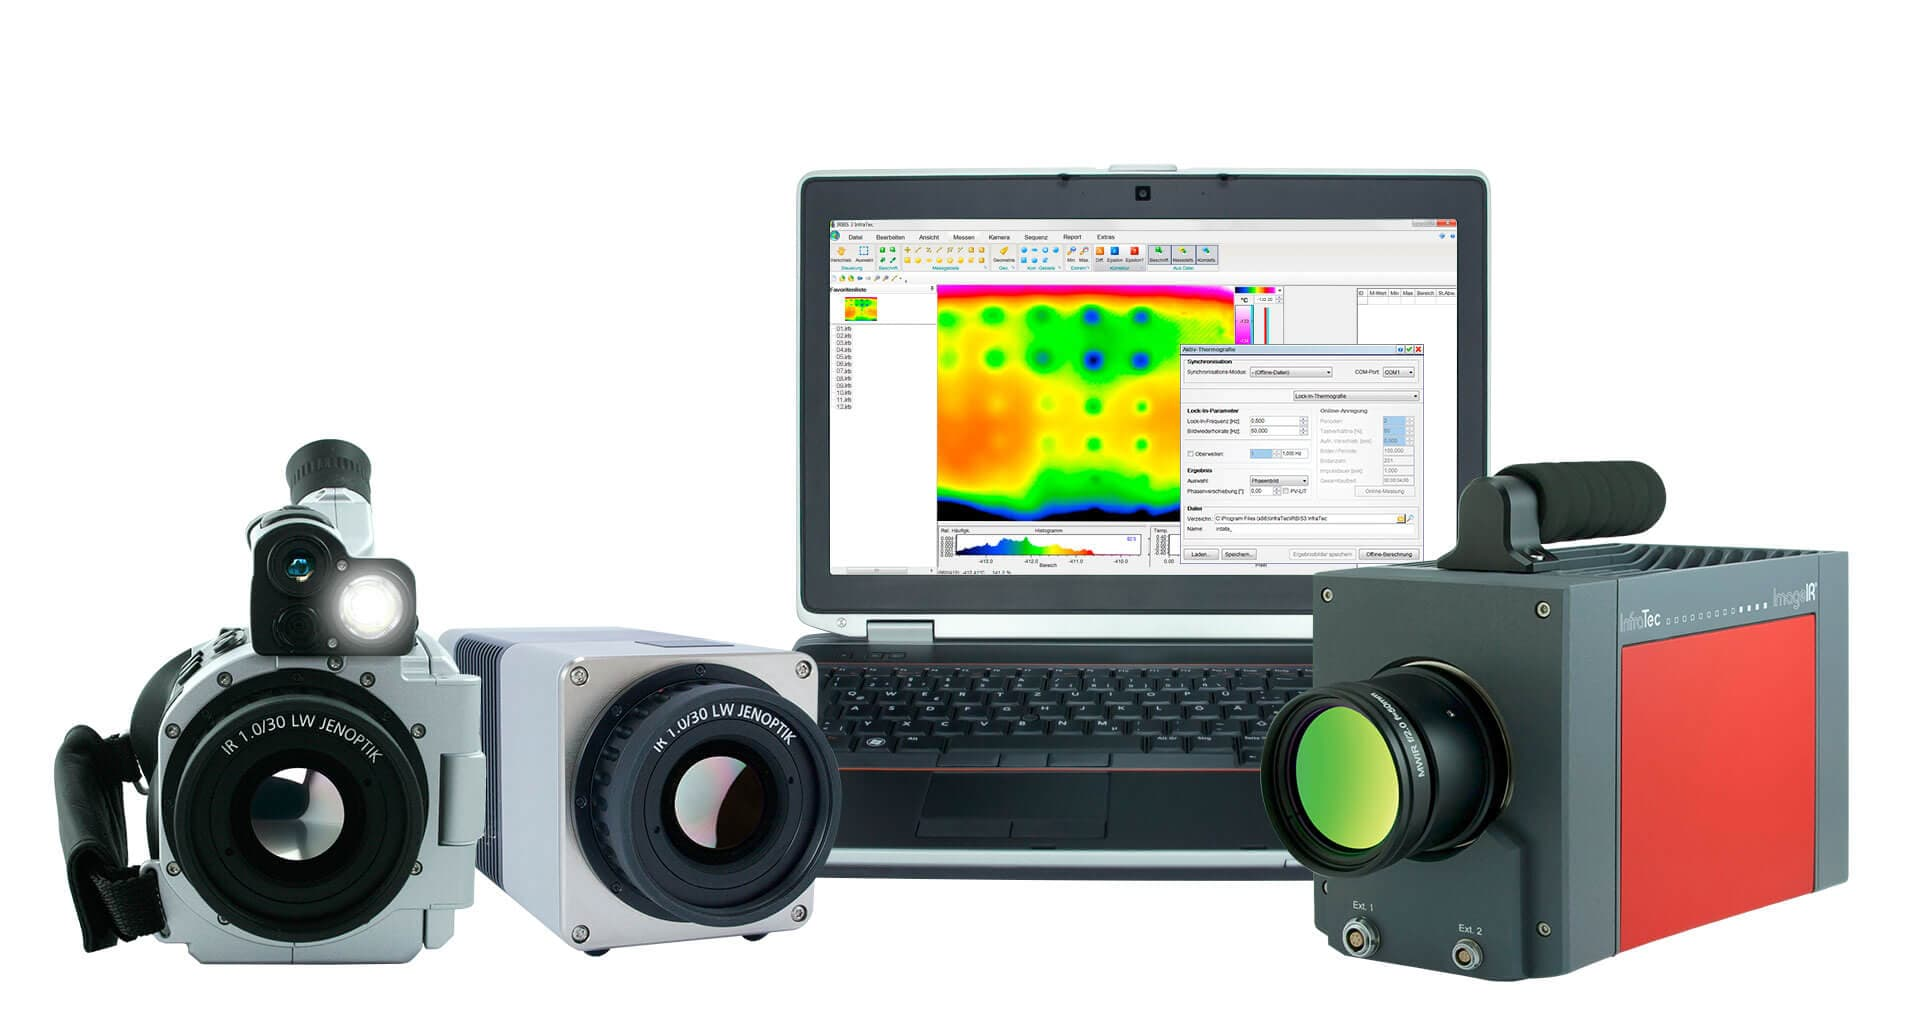 Active thermography for non-destructive testing